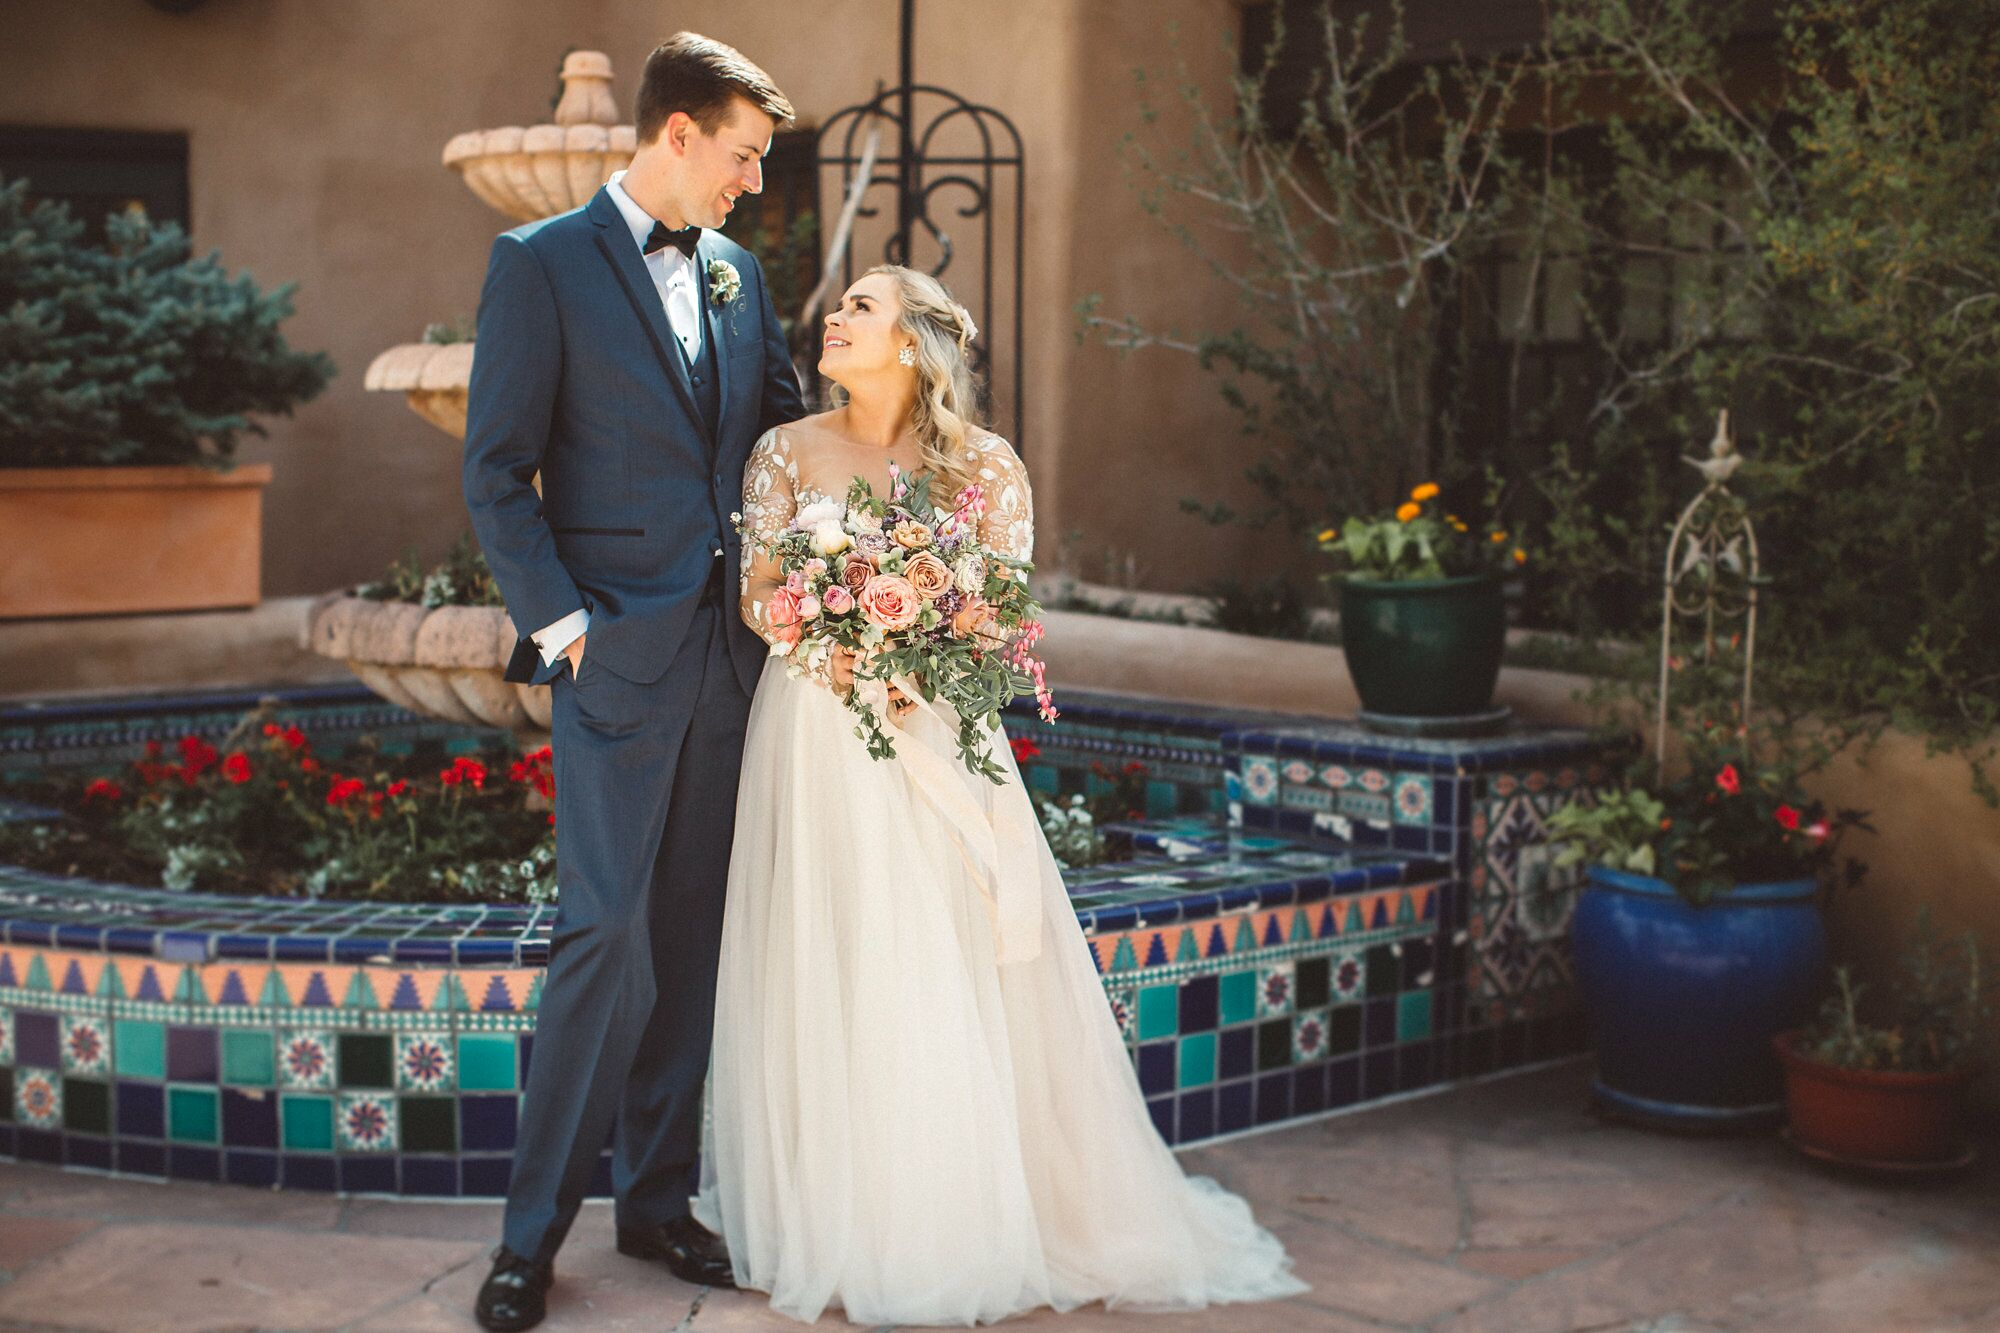 A Southwestern Themed Wedding At La Fonda On The Plaza In